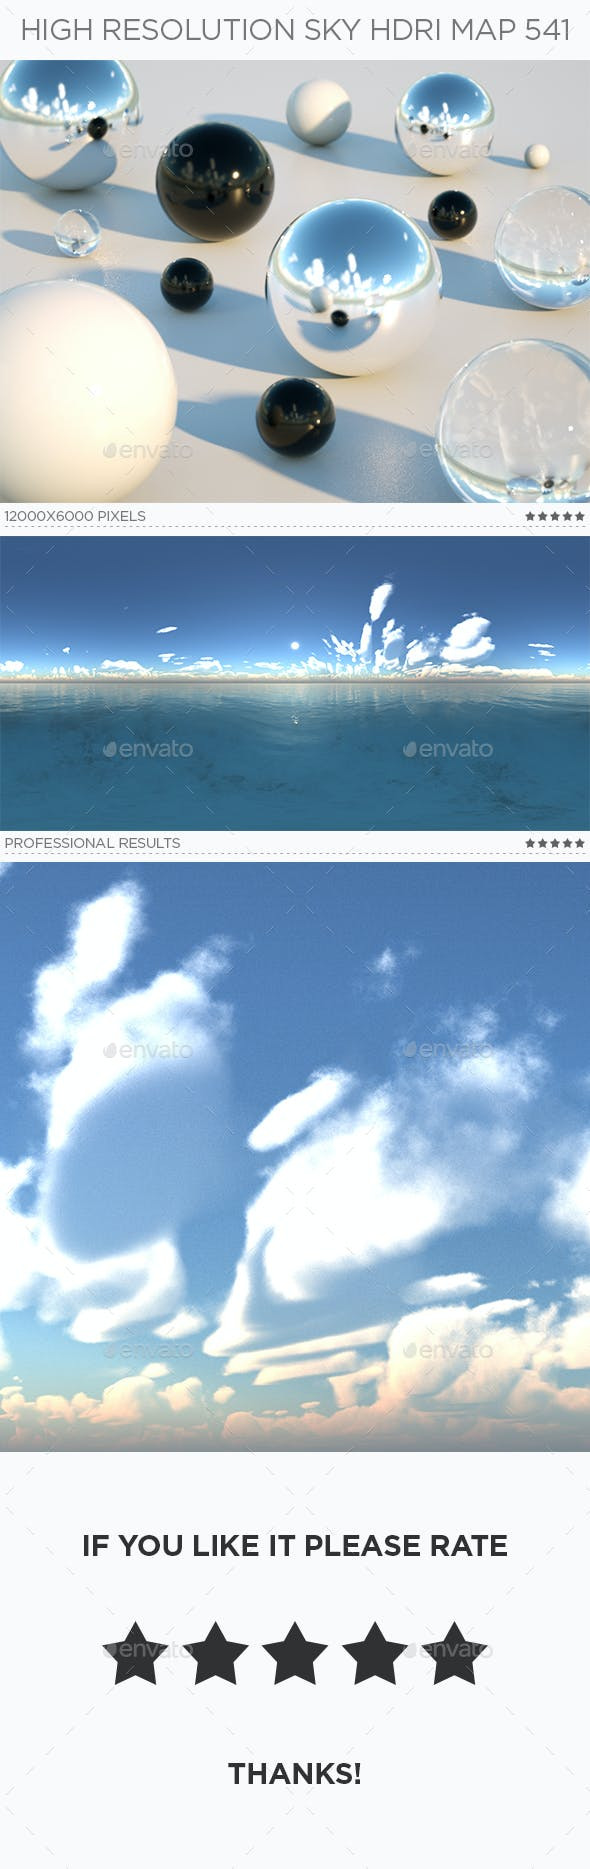 High Resolution Sky HDRi Map 541 - 3DOcean Item for Sale